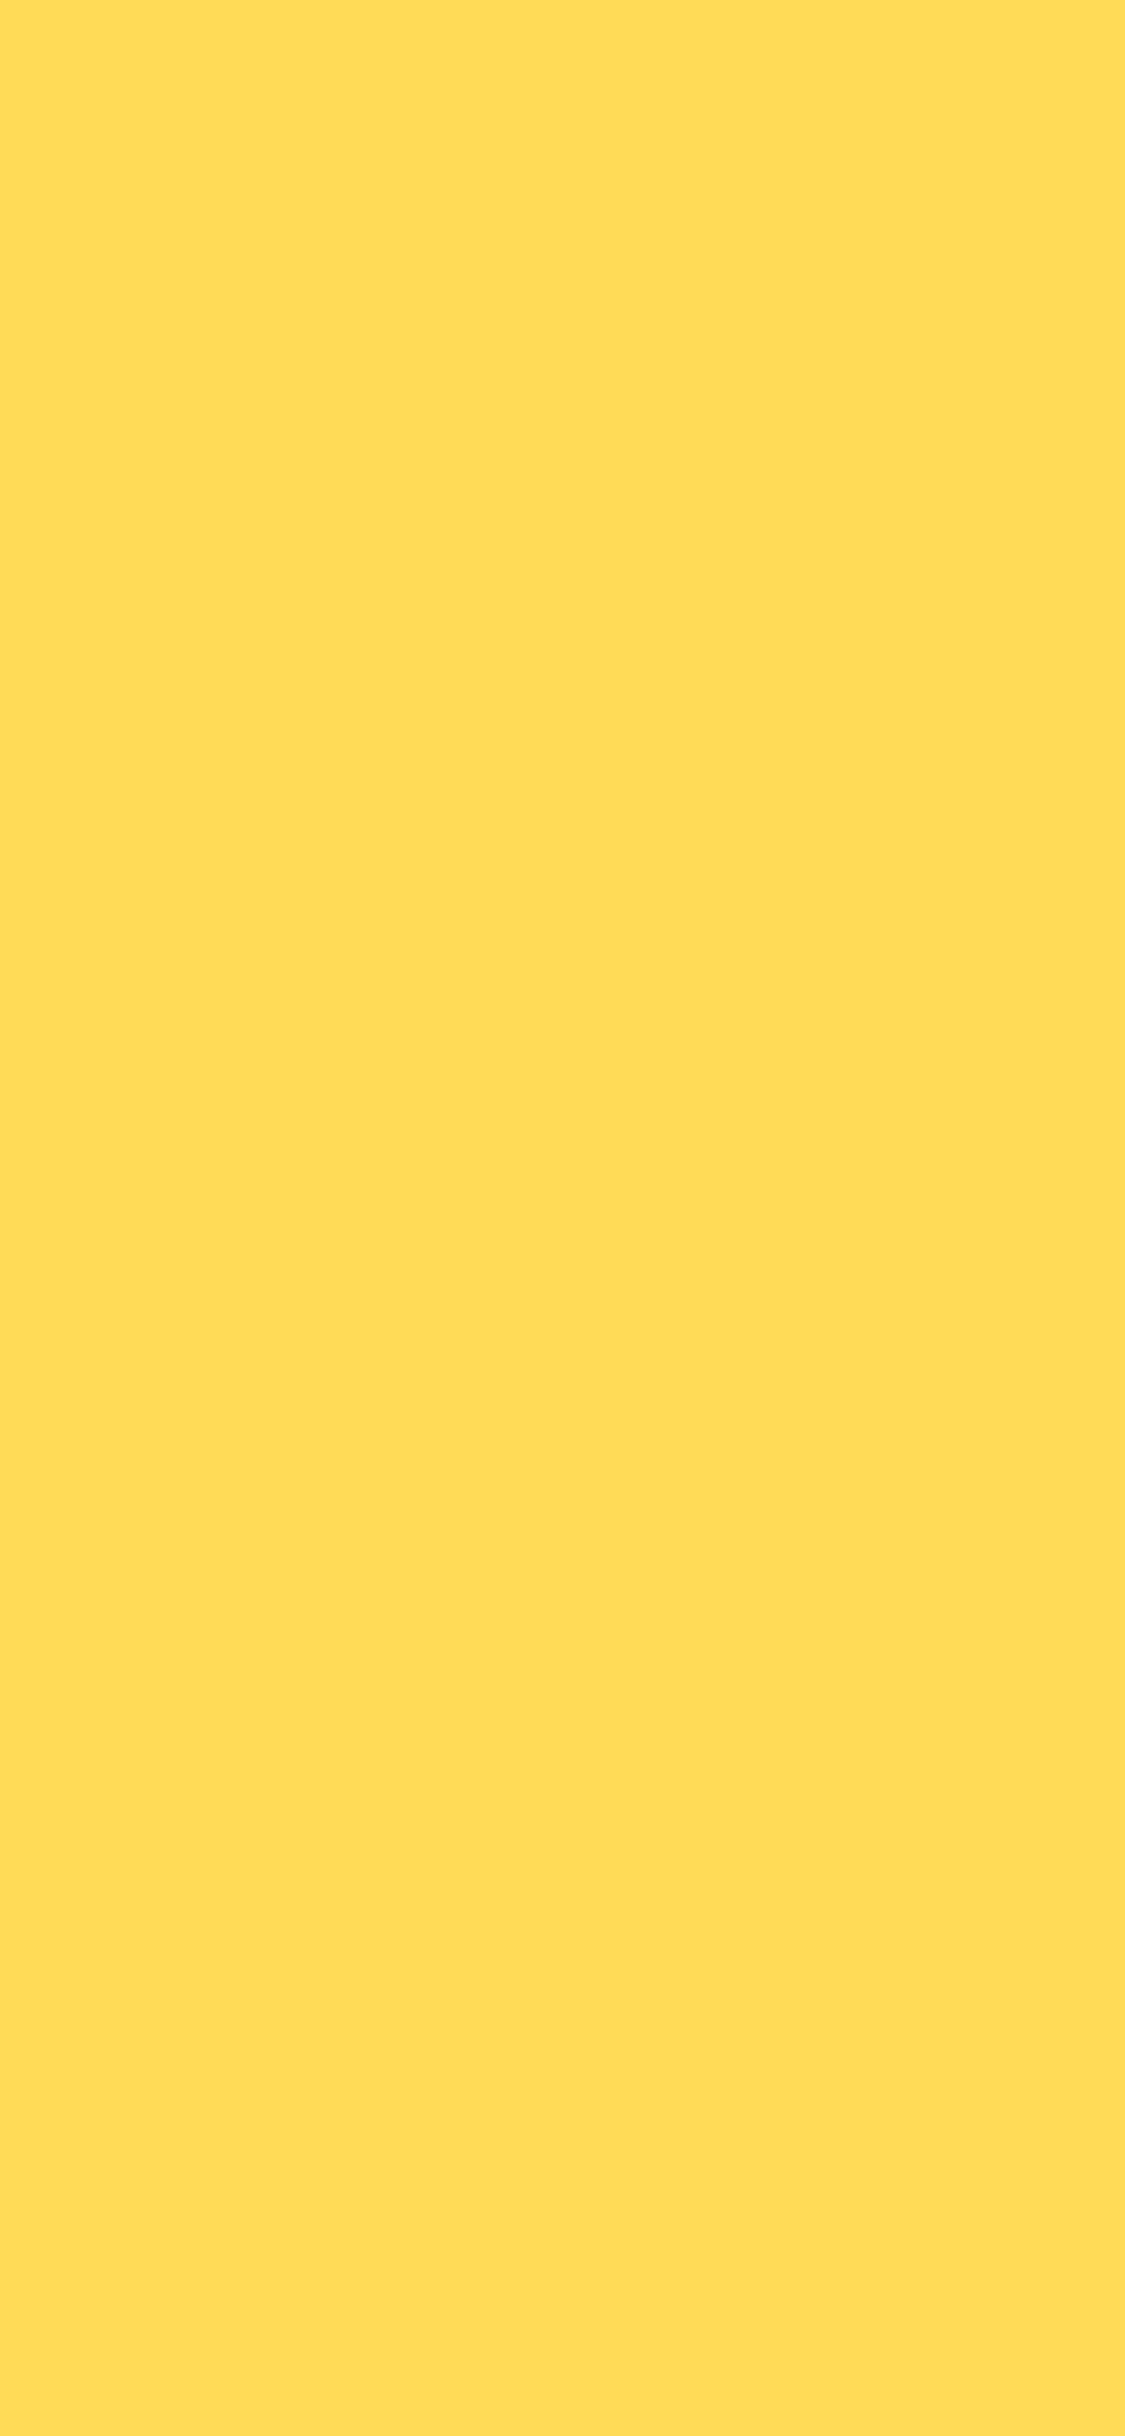 1125x2436 Mustard Solid Color Background